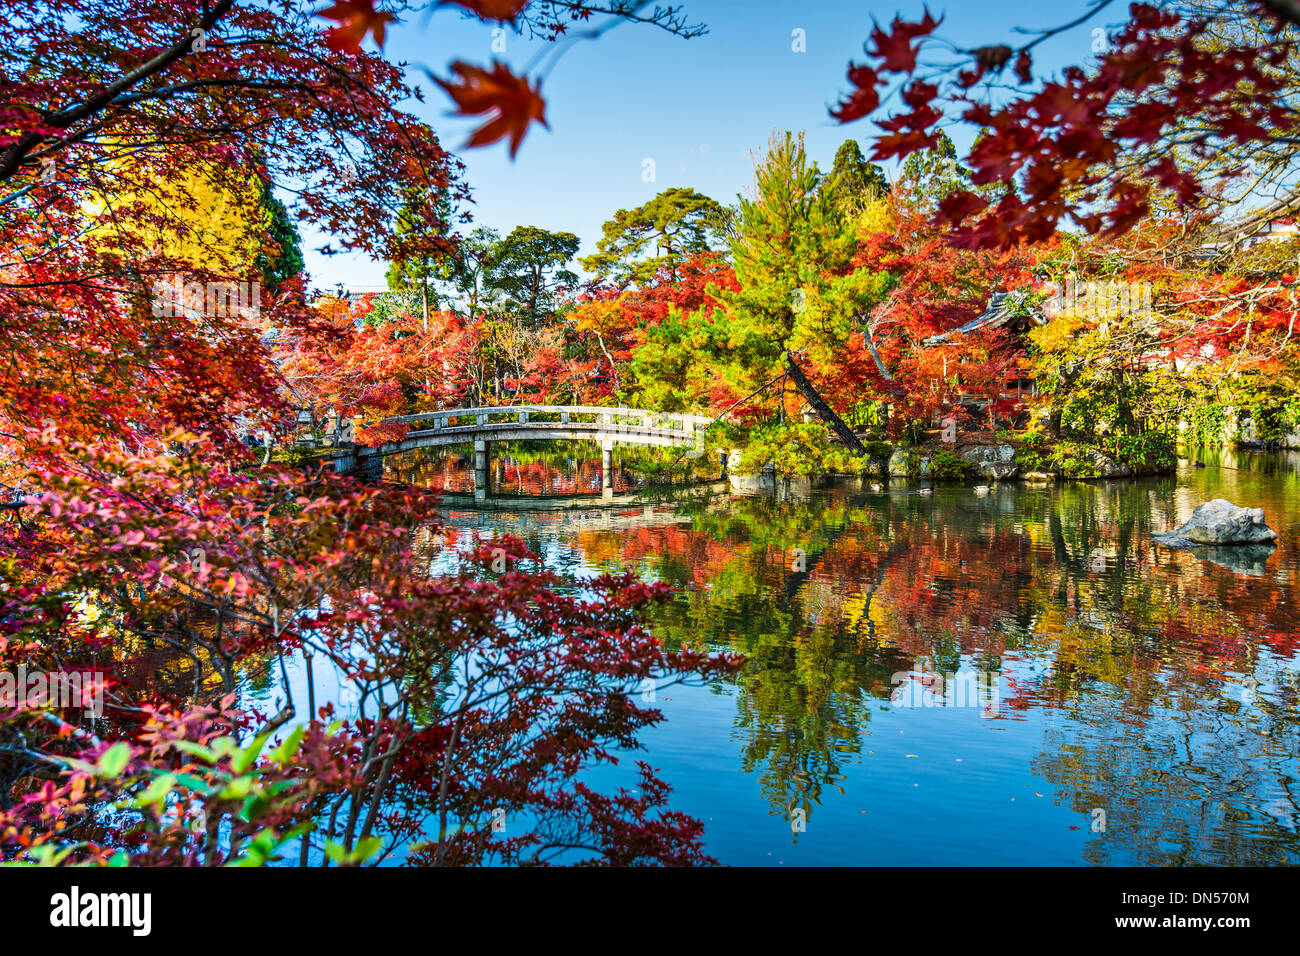 Eikando Gardens in Kyoto, Japan - Stock Image